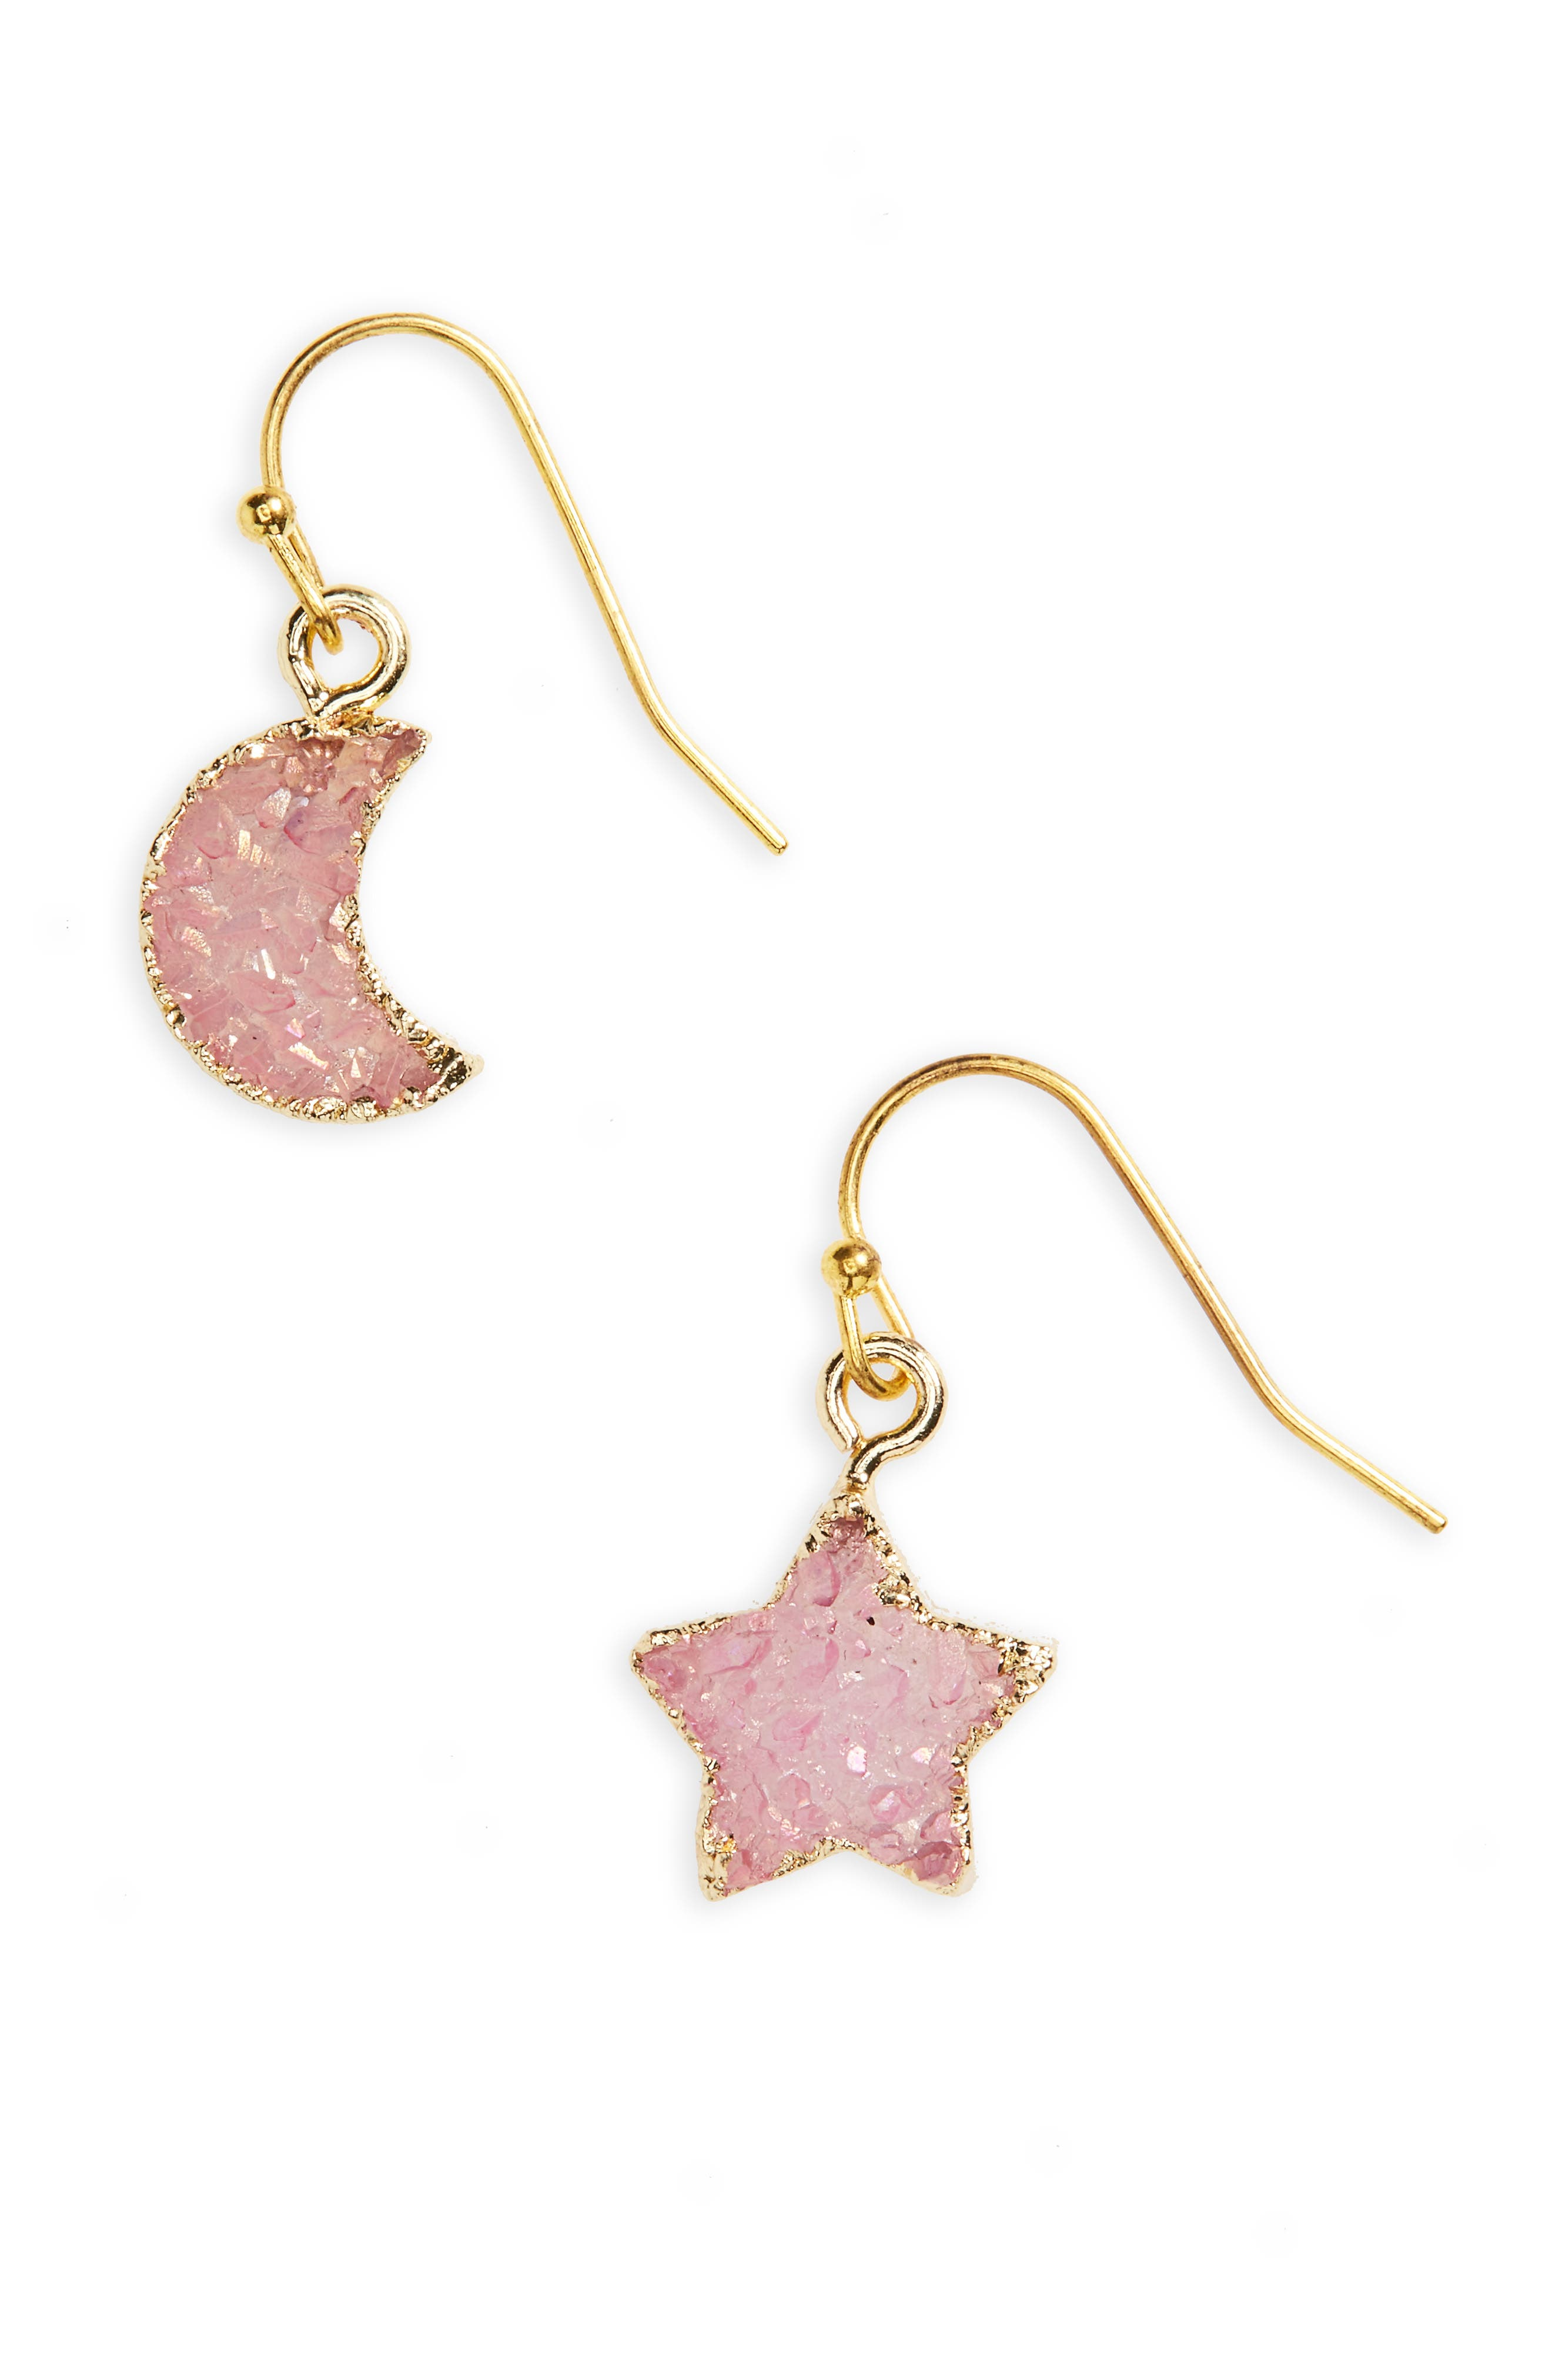 Moon & Star Drusy Stone Earrings,                             Main thumbnail 1, color,                             Pink